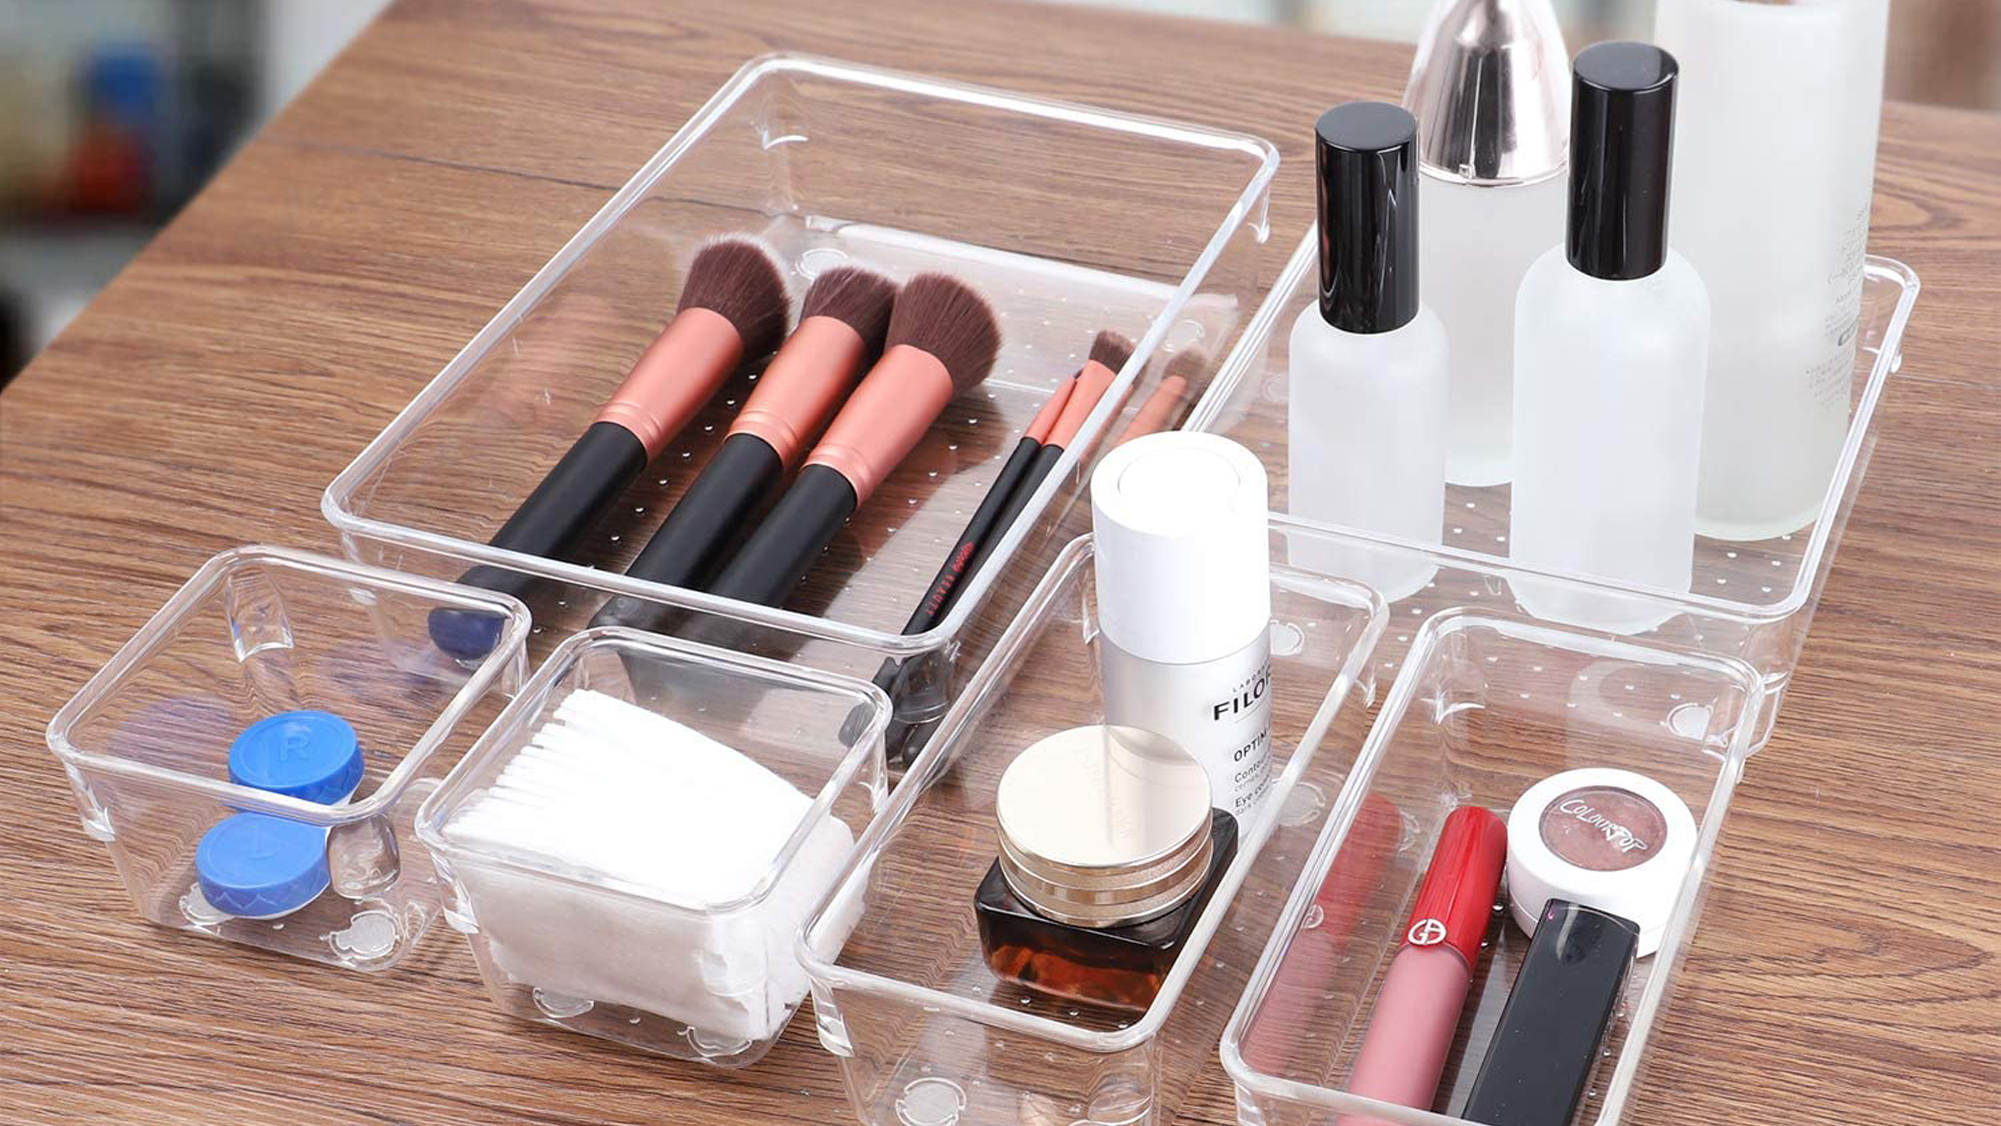 SMARTAKE 13-Piece Drawer Organizers with Non-Slip Silicone Pads